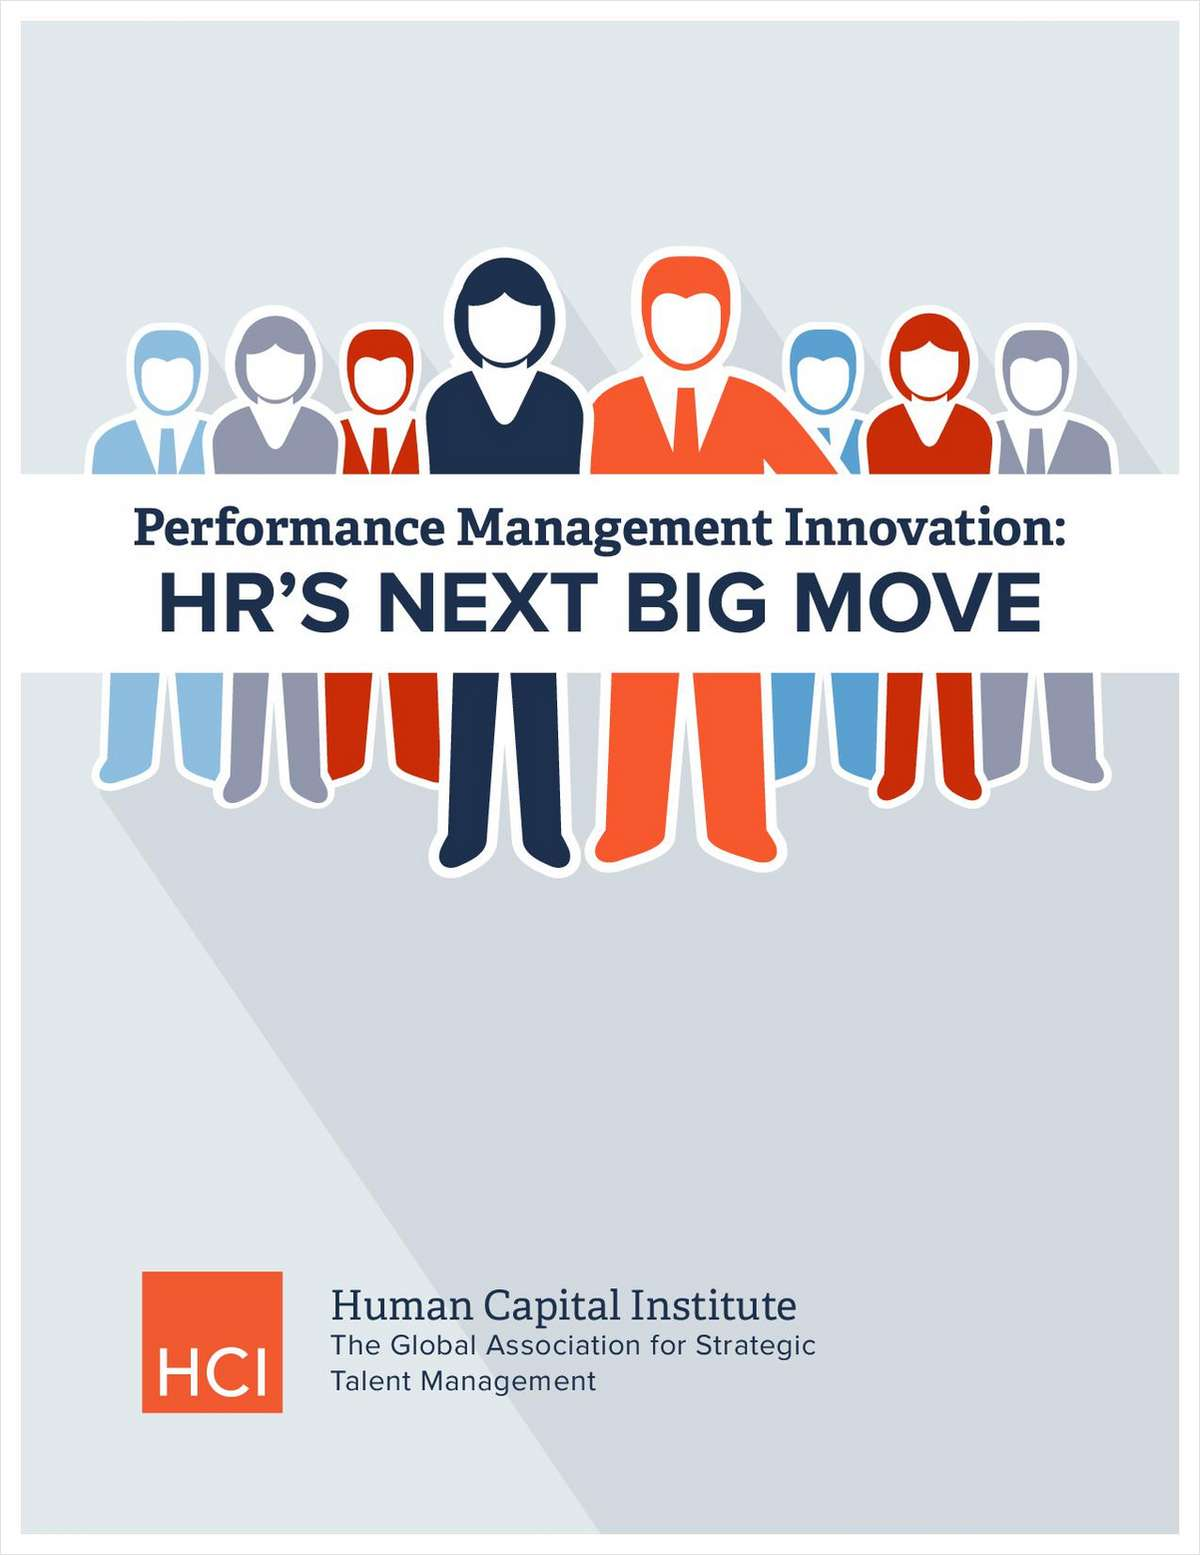 Performance Management Innovation: HR's Next Big Move